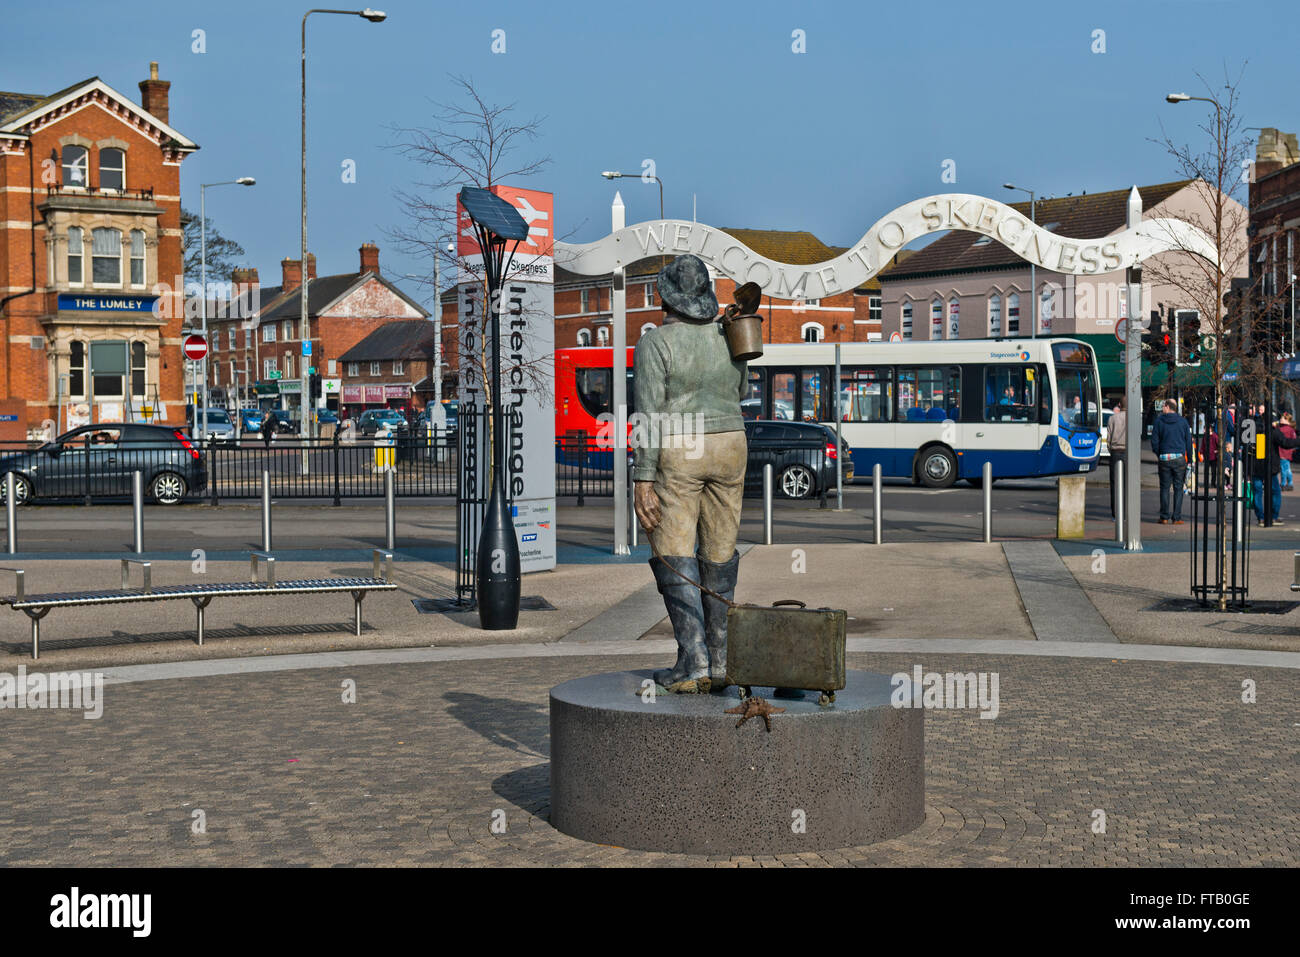 The Jolly Fisherman statue and the towns mascot stands outside the Skegness Railway Station. - Stock Image